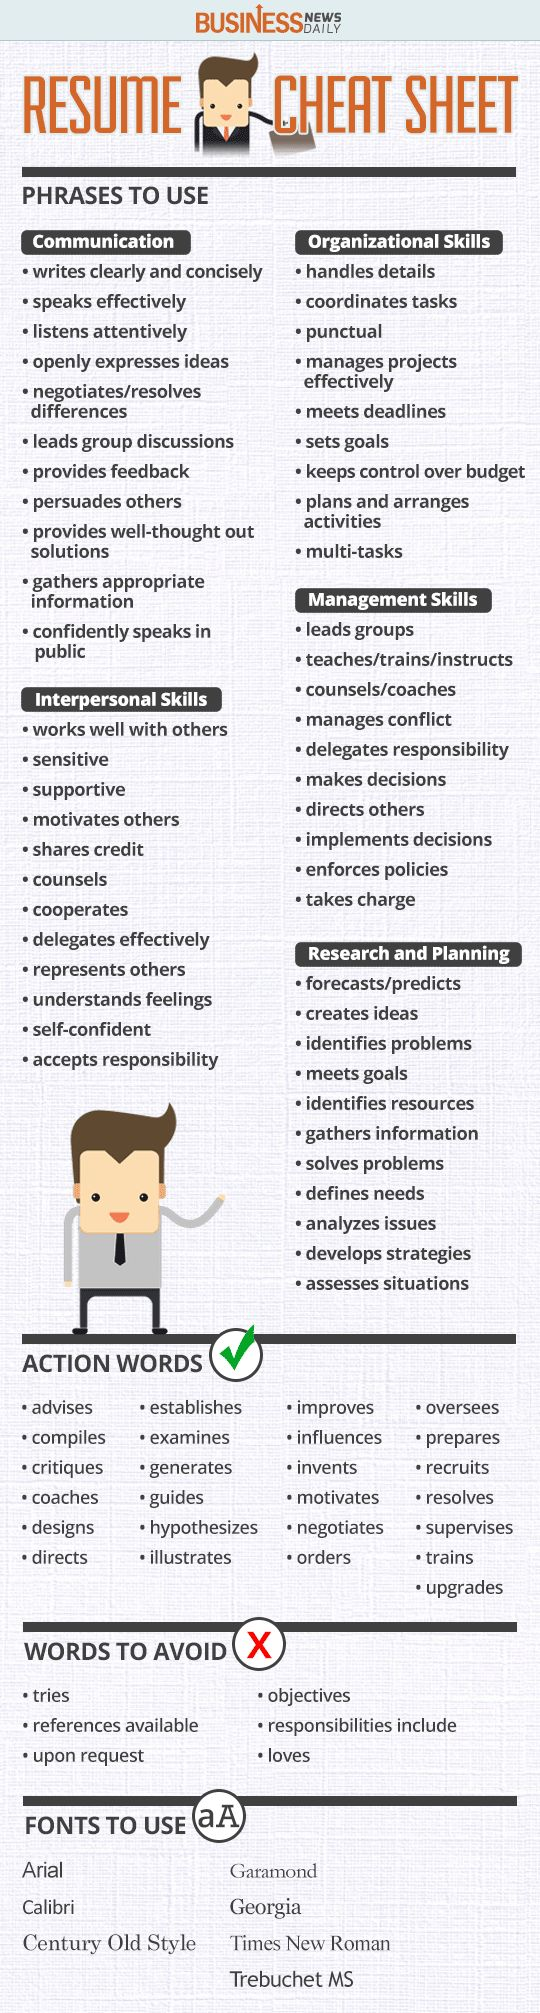 Opposenewapstandardsus  Terrific  Ideas About Resume On Pinterest  Cv Format Resume Cv And  With Inspiring Resume Cheat Sheet Infographic Andrews Almost Done With A Complete Unit On Employment Which With Attractive Photographer Resume Also Resume Summary Statement Examples In Addition Technical Skills Resume And Account Manager Resume As Well As Easy Resume Template Additionally Property Manager Resume From Pinterestcom With Opposenewapstandardsus  Inspiring  Ideas About Resume On Pinterest  Cv Format Resume Cv And  With Attractive Resume Cheat Sheet Infographic Andrews Almost Done With A Complete Unit On Employment Which And Terrific Photographer Resume Also Resume Summary Statement Examples In Addition Technical Skills Resume From Pinterestcom